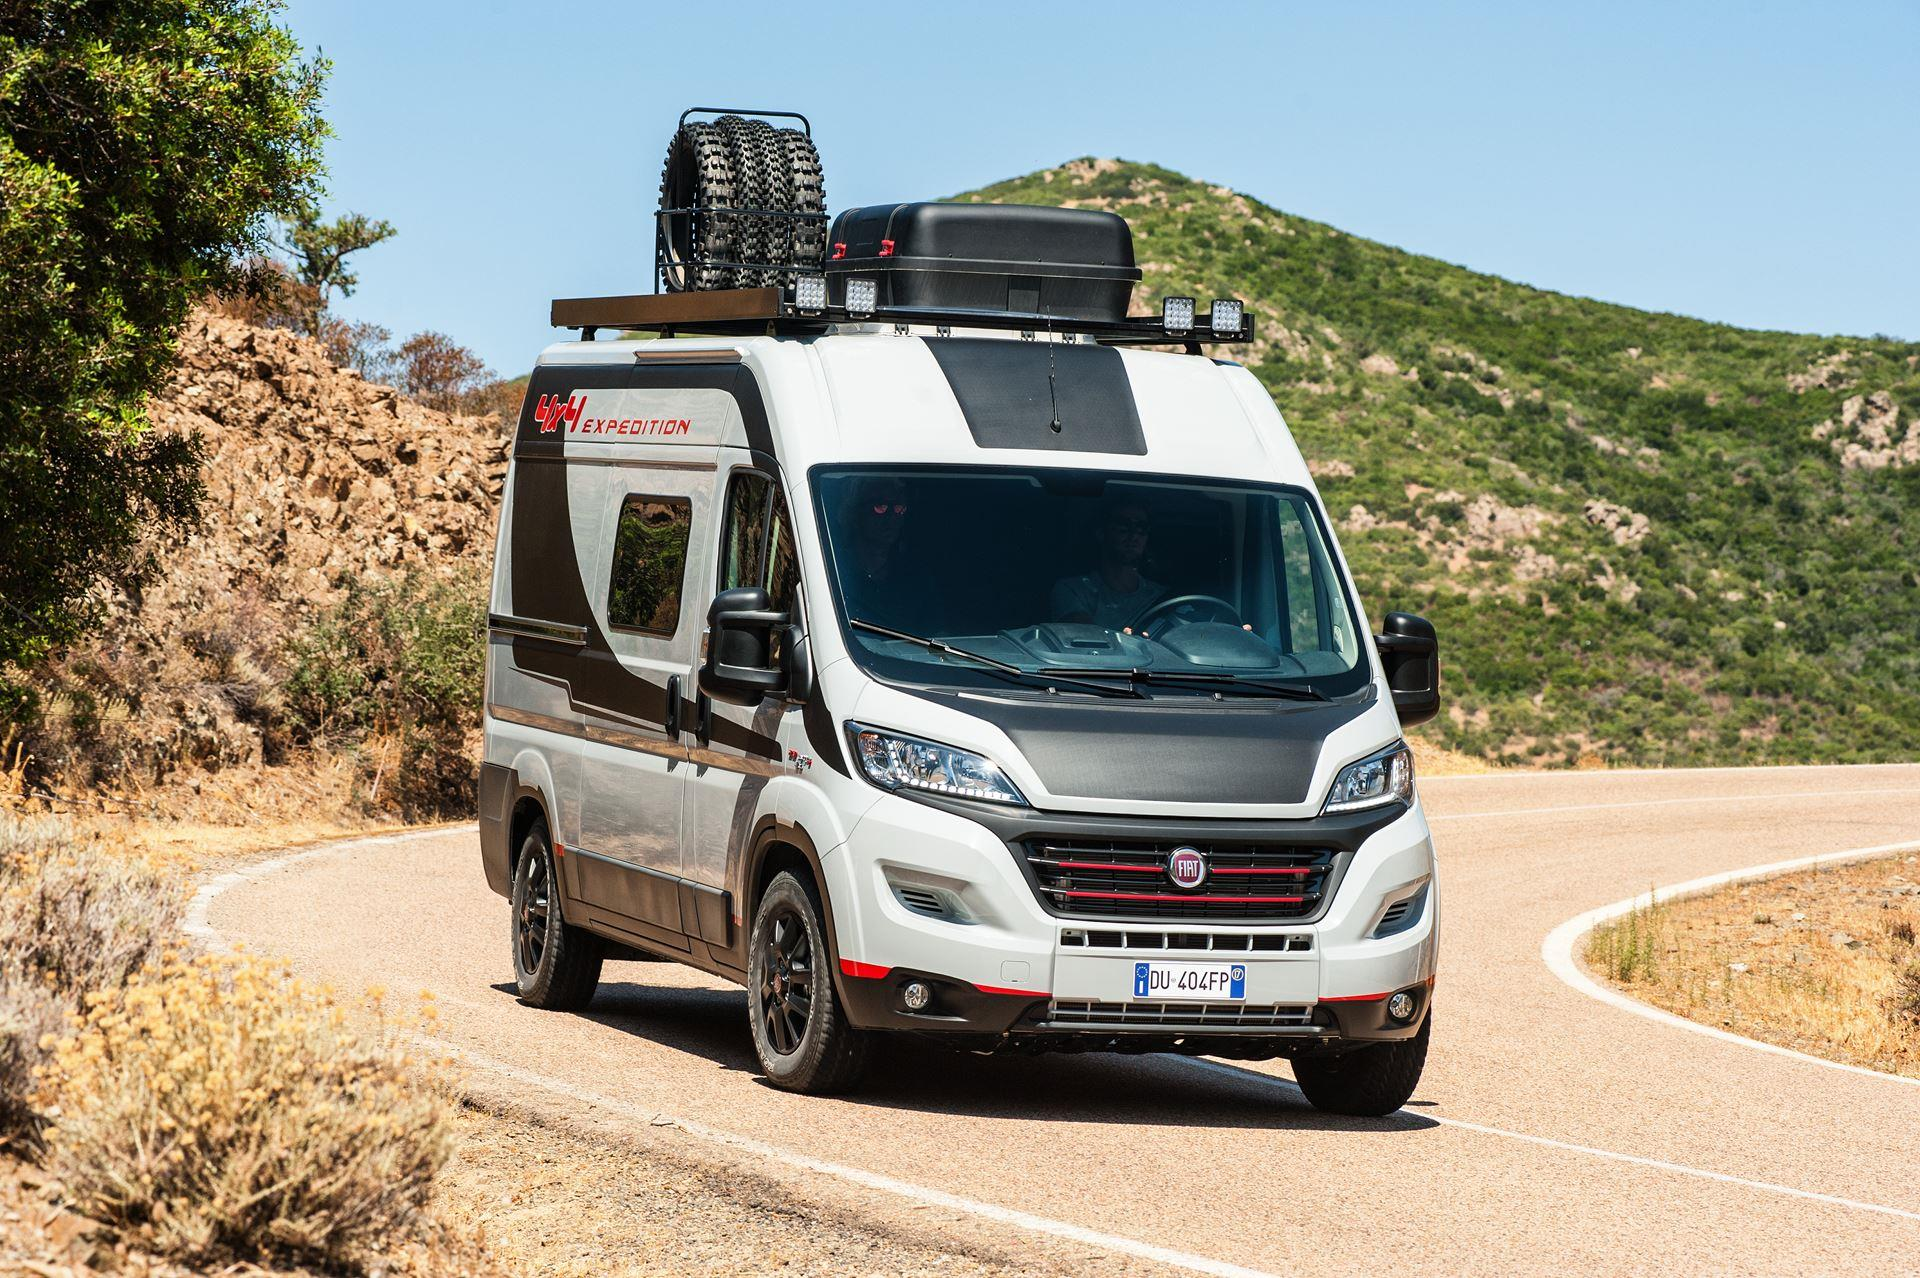 2017 Fiat Ducato 4x4 Expedition - conceptcarz.com